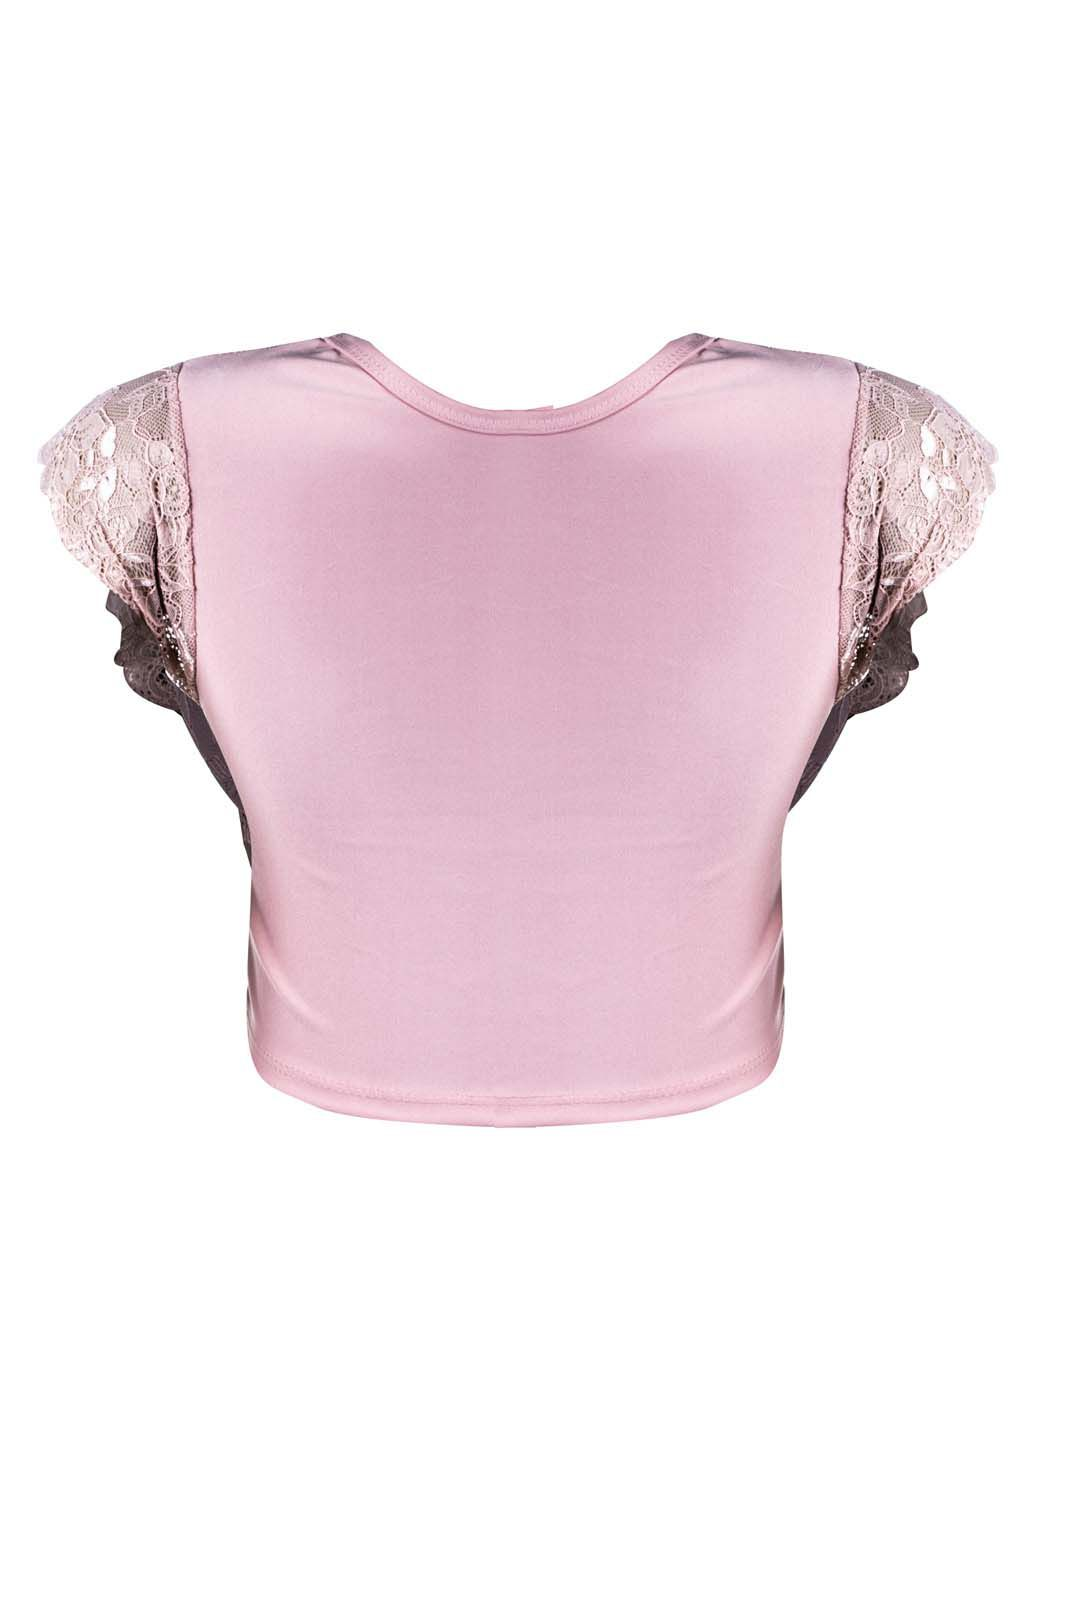 Top Outlet Dri Cropped Manga Curta Rendada Detalhe Decote Tule Rosa